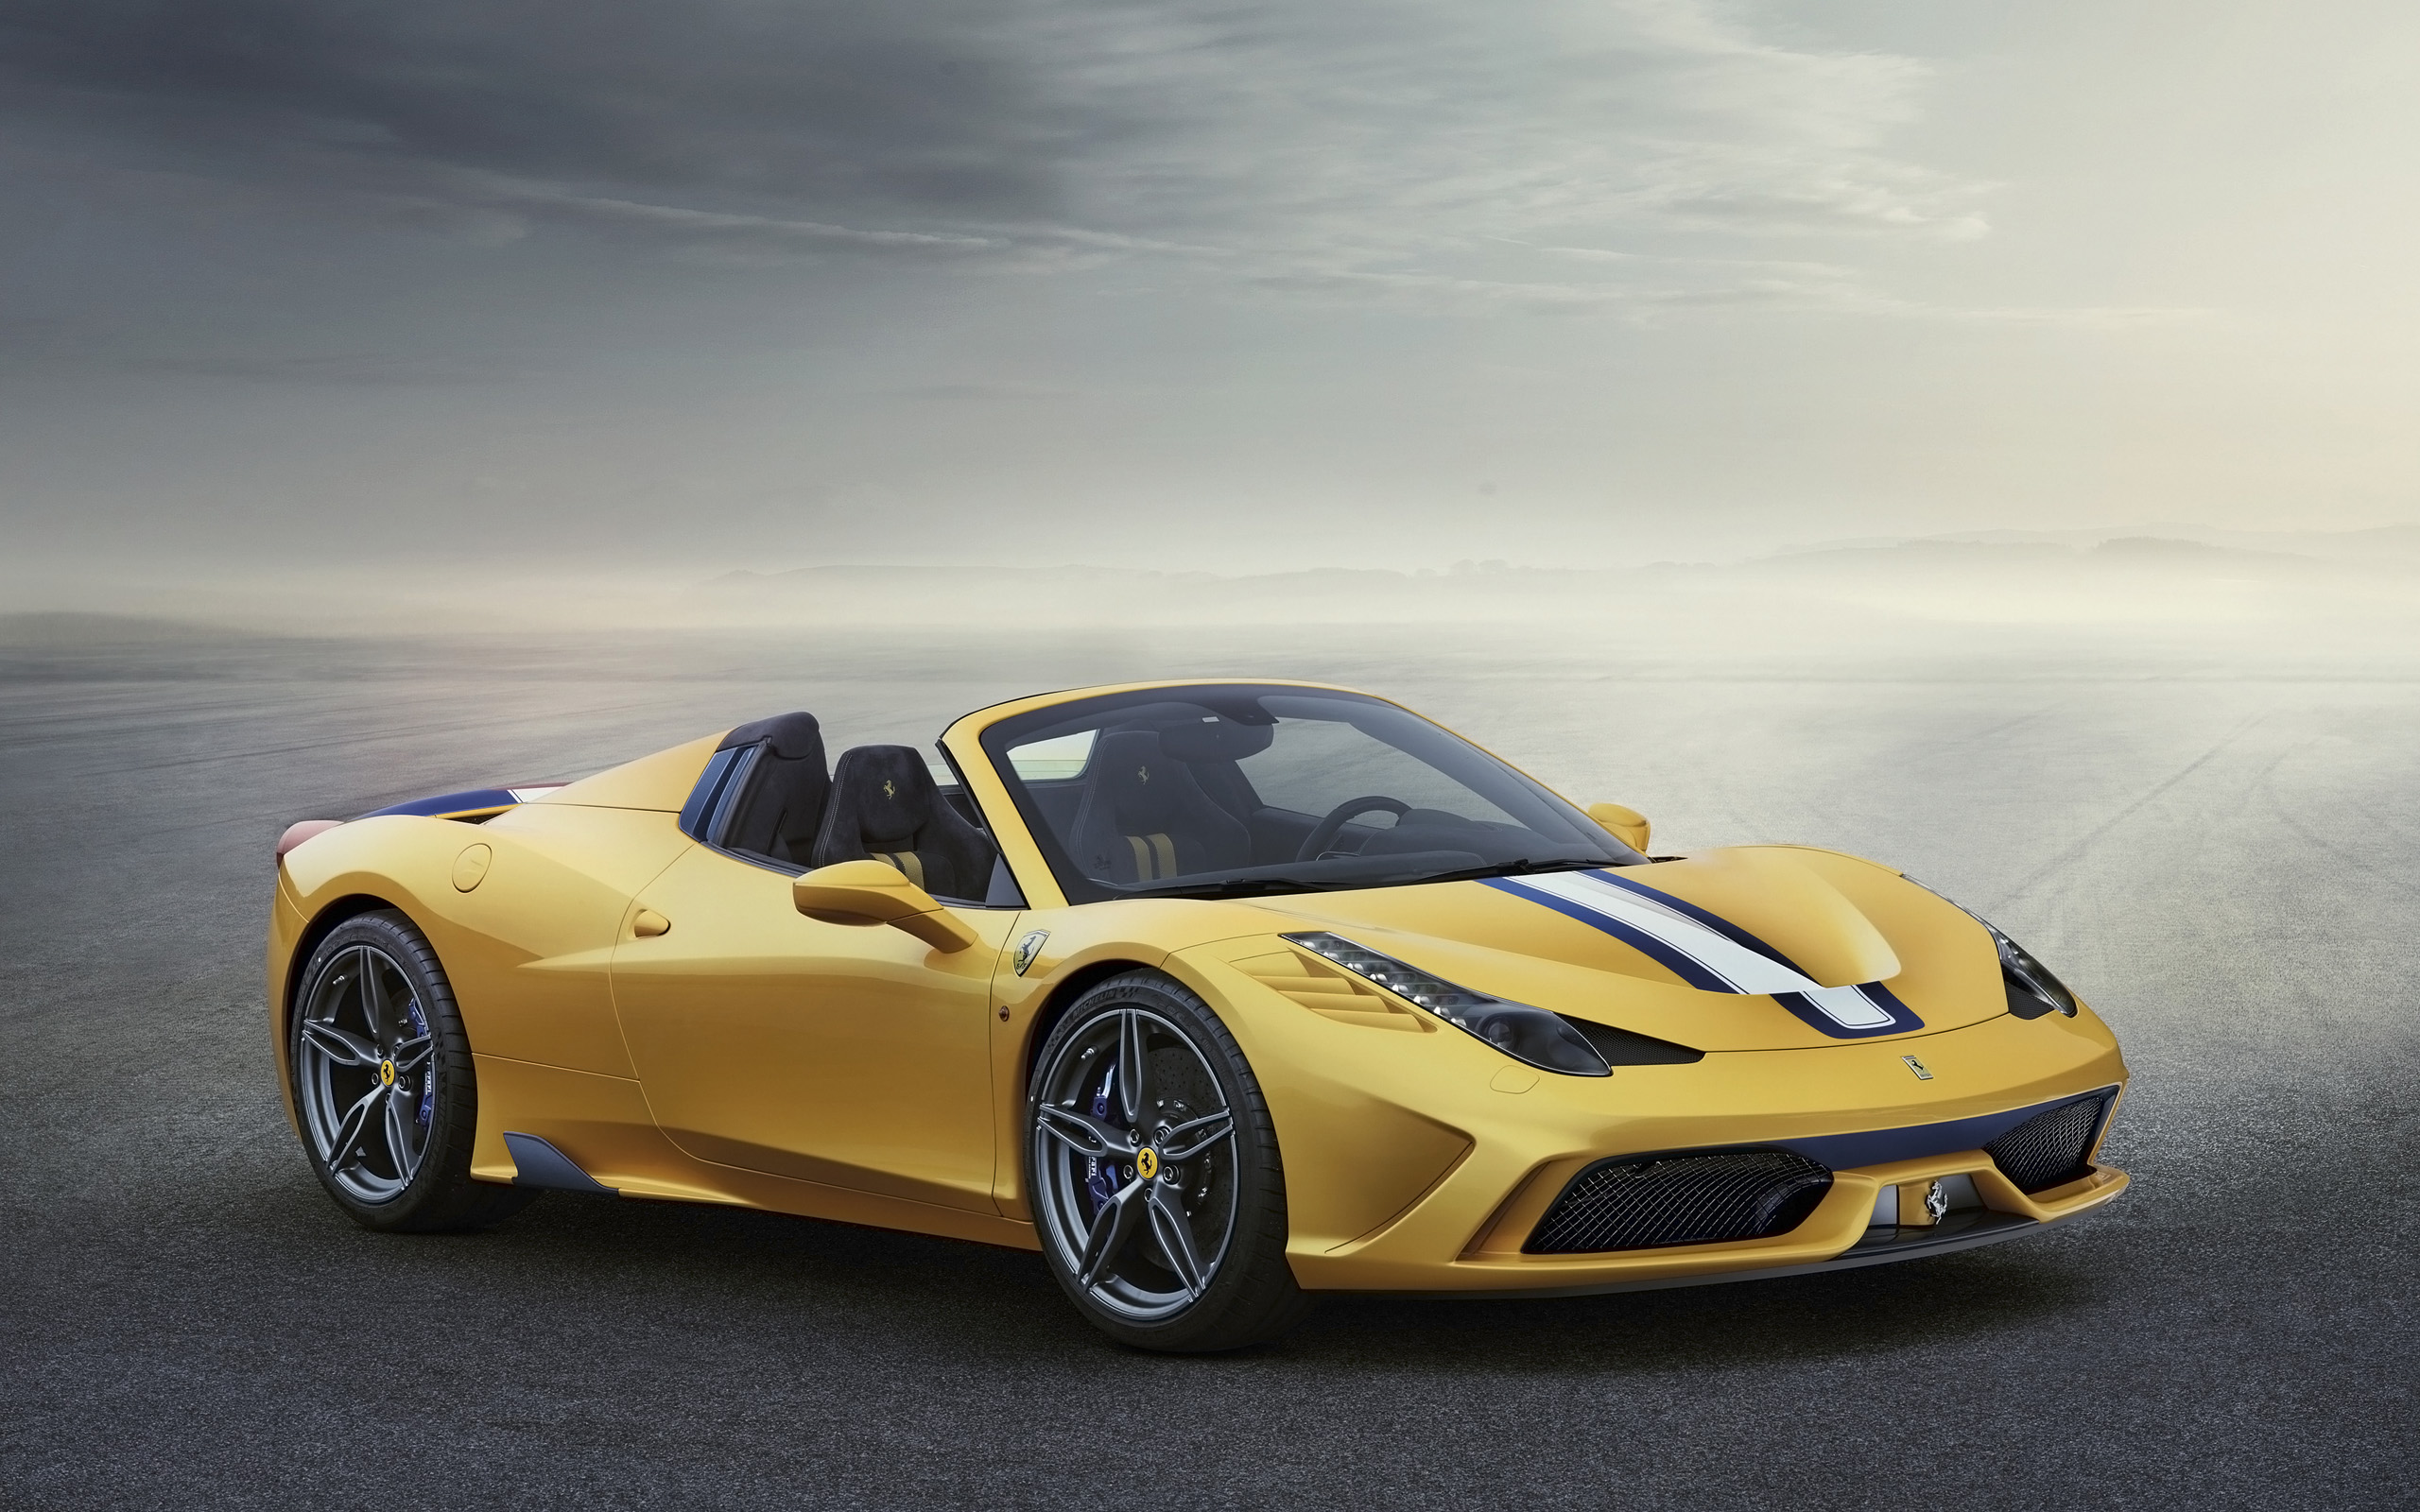 2015 Ferrari 458 Speciale A 3 Wallpaper Hd Car Wallpapers Id 4847